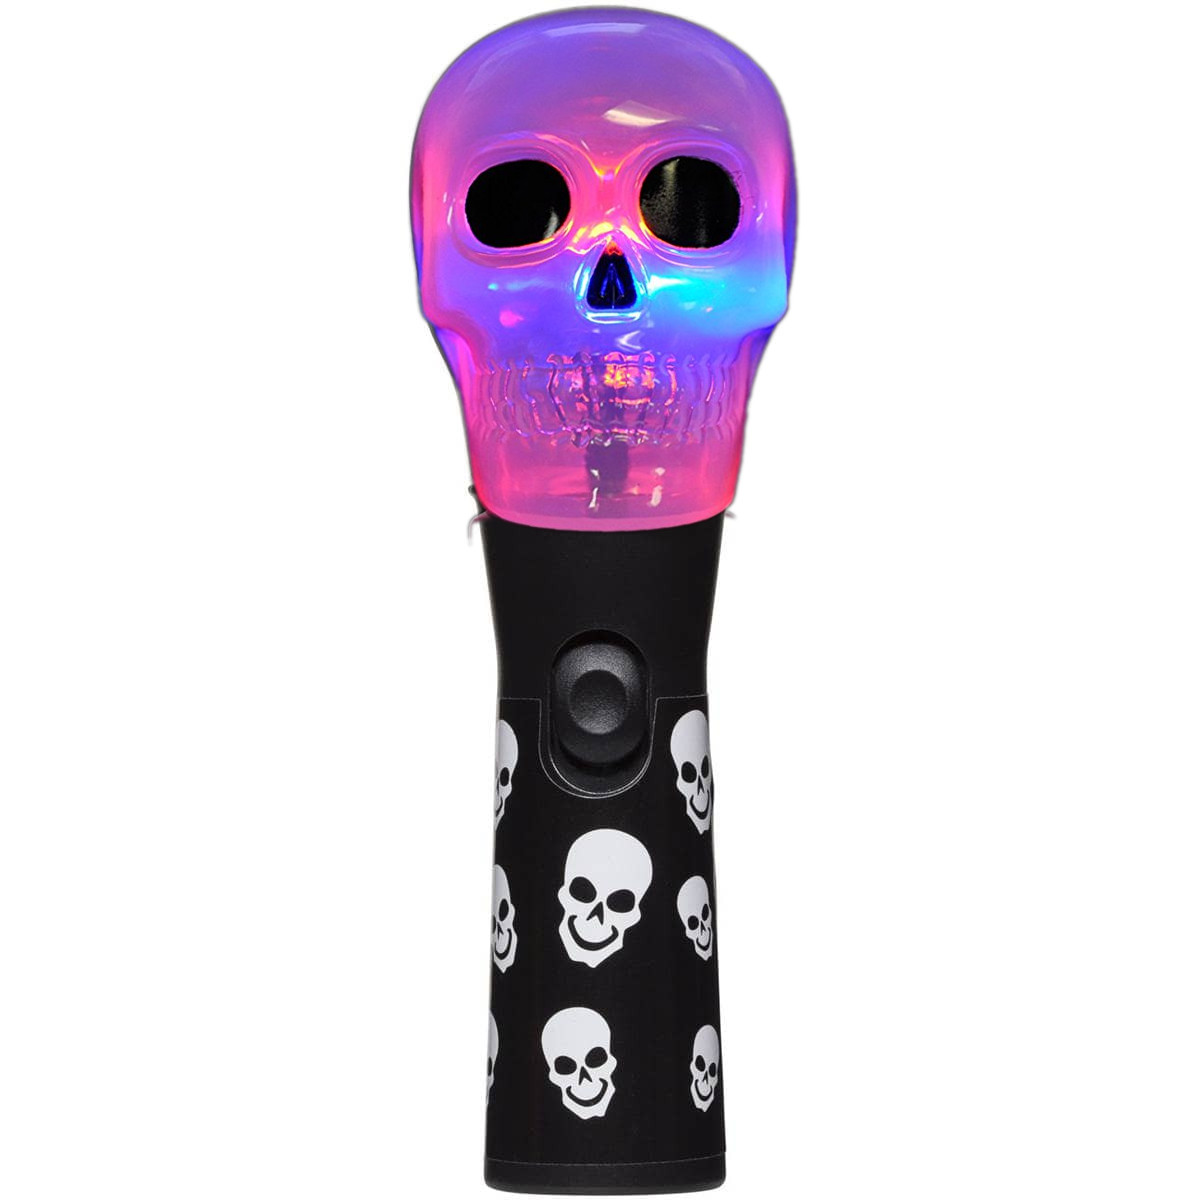 Scary Skull Wand with Spinning Lights All Products